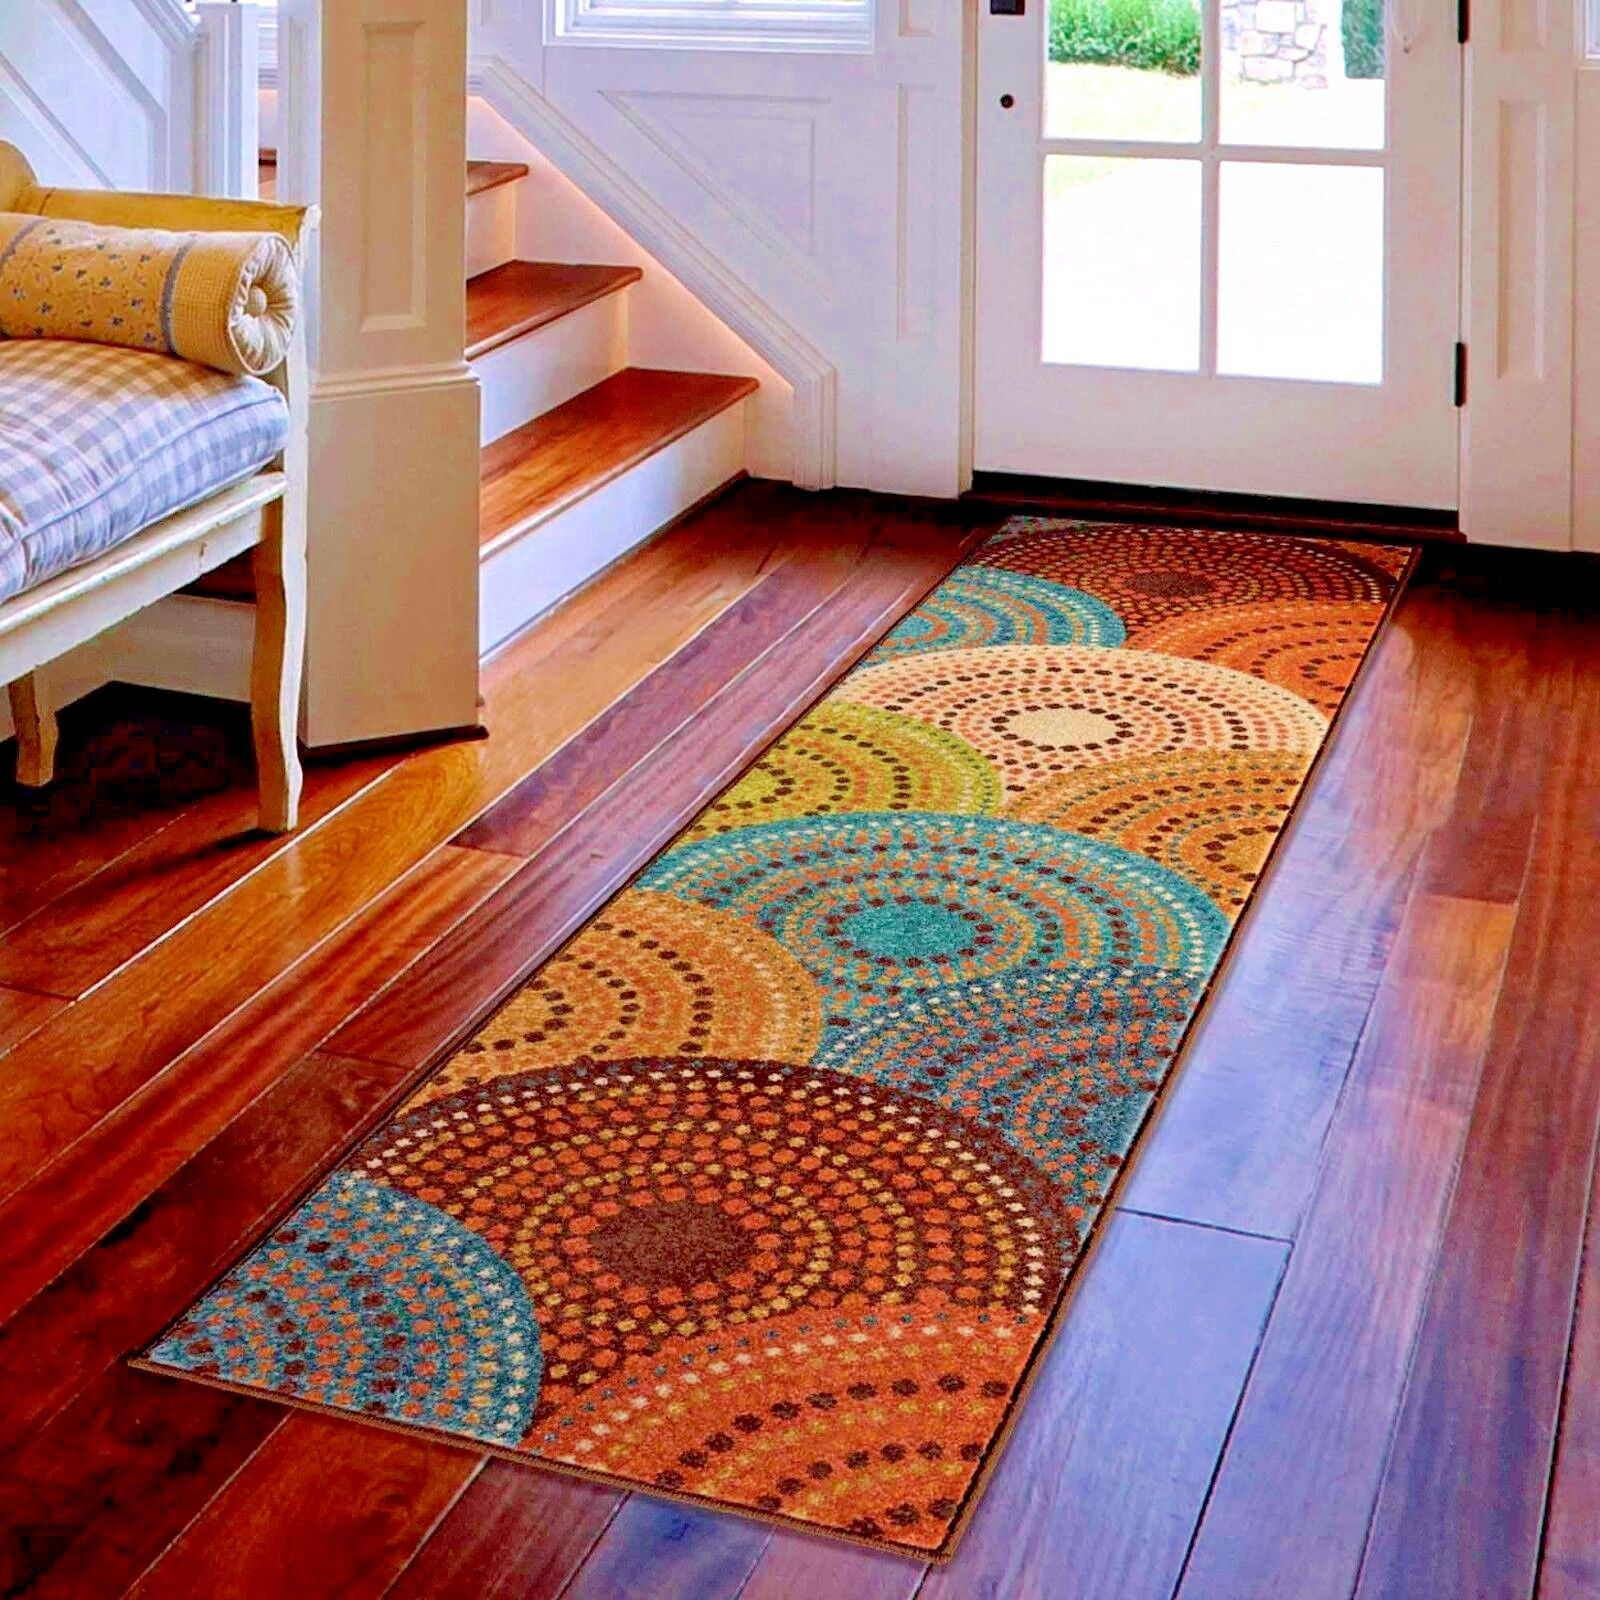 Runner Rugs Carpet Runners Area Rug Runners Hallway Cool Colorful